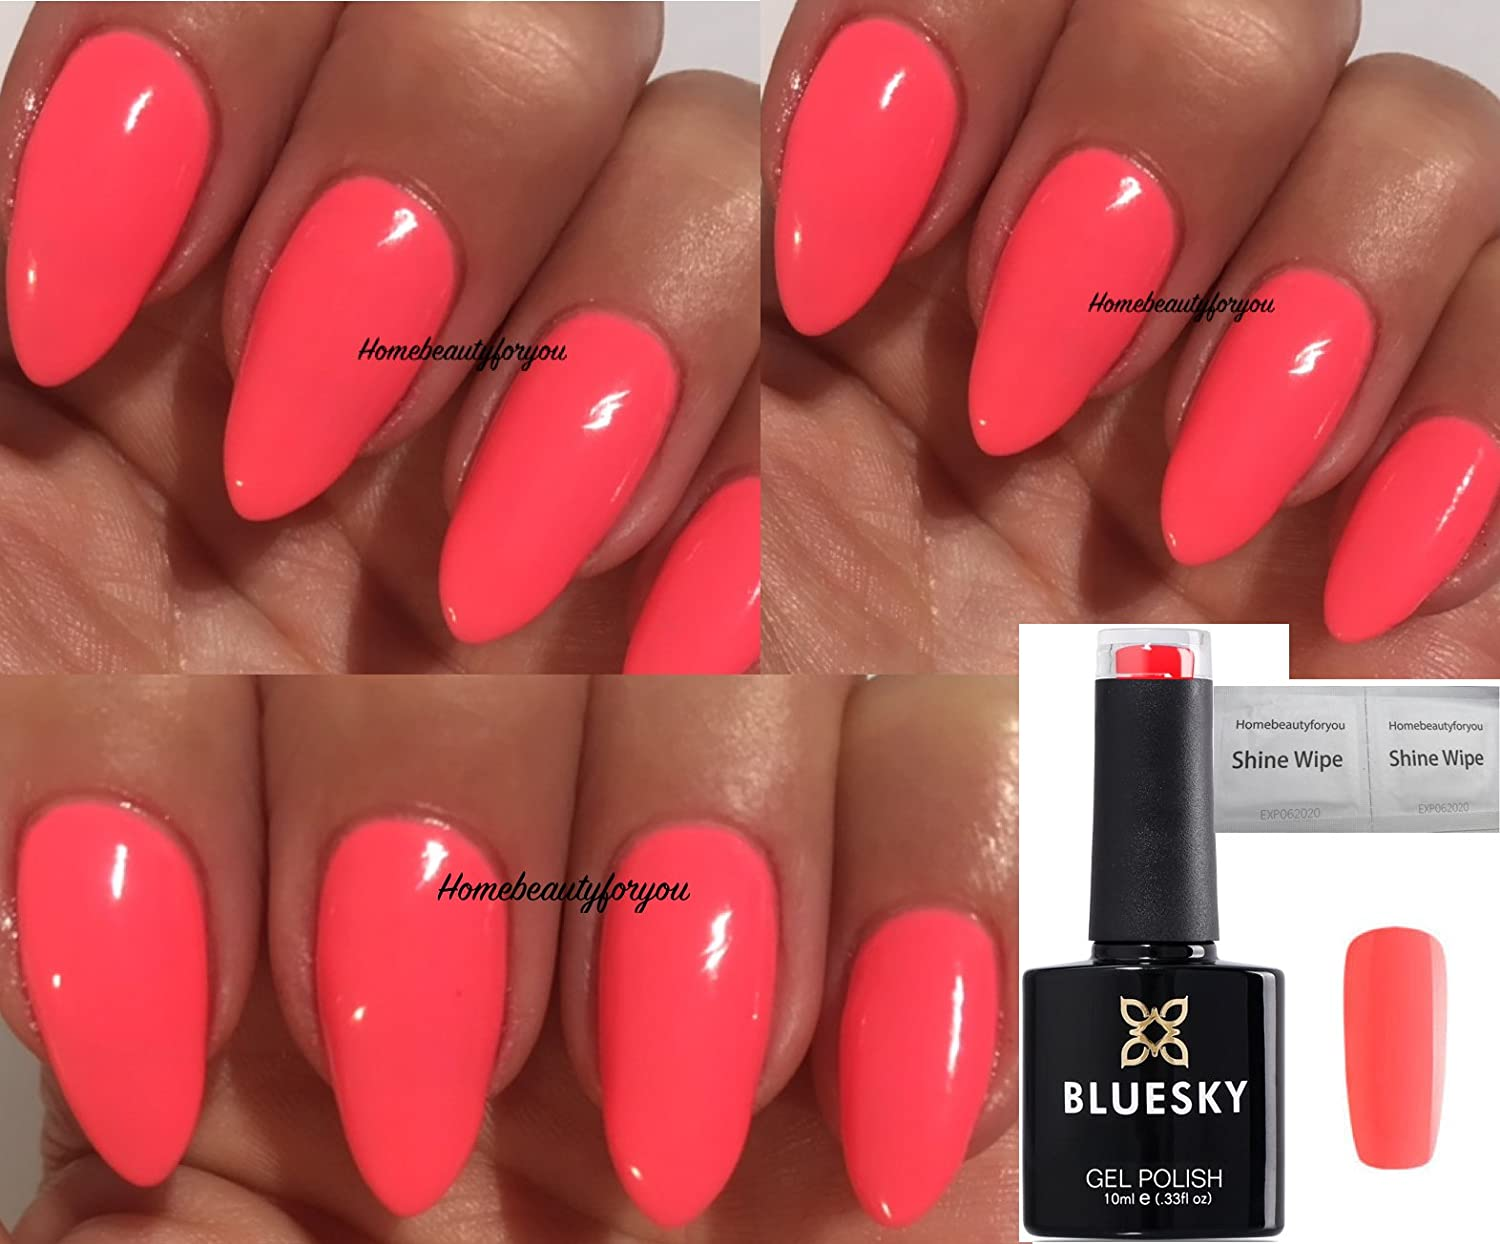 Bluesky DC55 Coral Peachy Pink Blossom Dence Range Nail Gel Polish UV LED Soak Off 10ml PLUS 2 Luvlinail Shine Wipes LTD